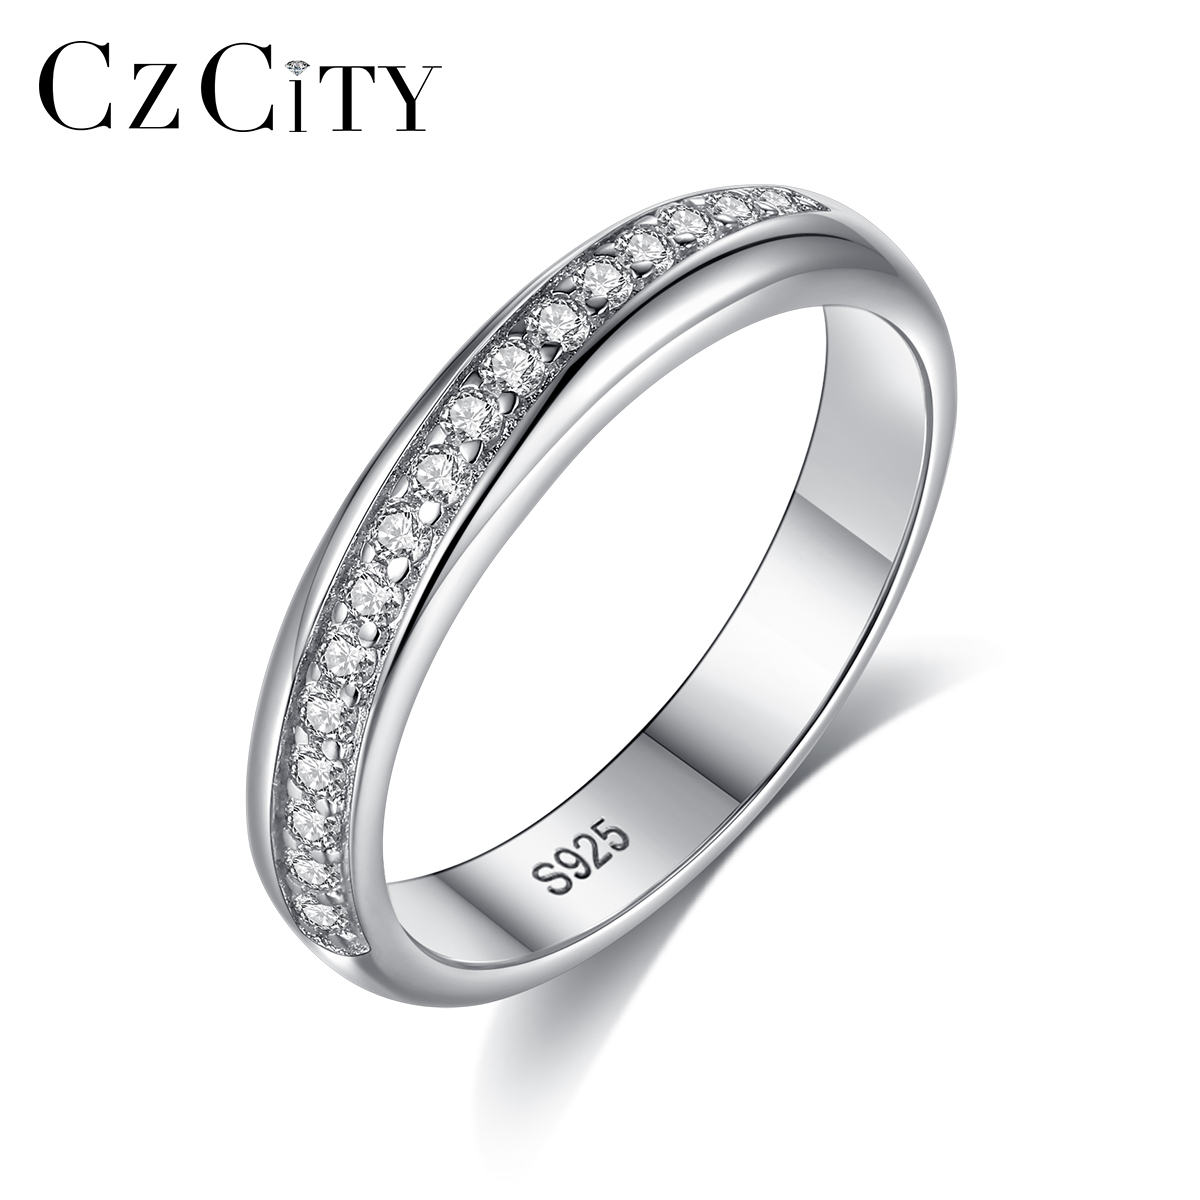 CZCITY Brand Design Pure 925 Sterling Silver Female Eternal Ring For Women Bride Simple Finger Ring Engagement Jewelry  SR0454